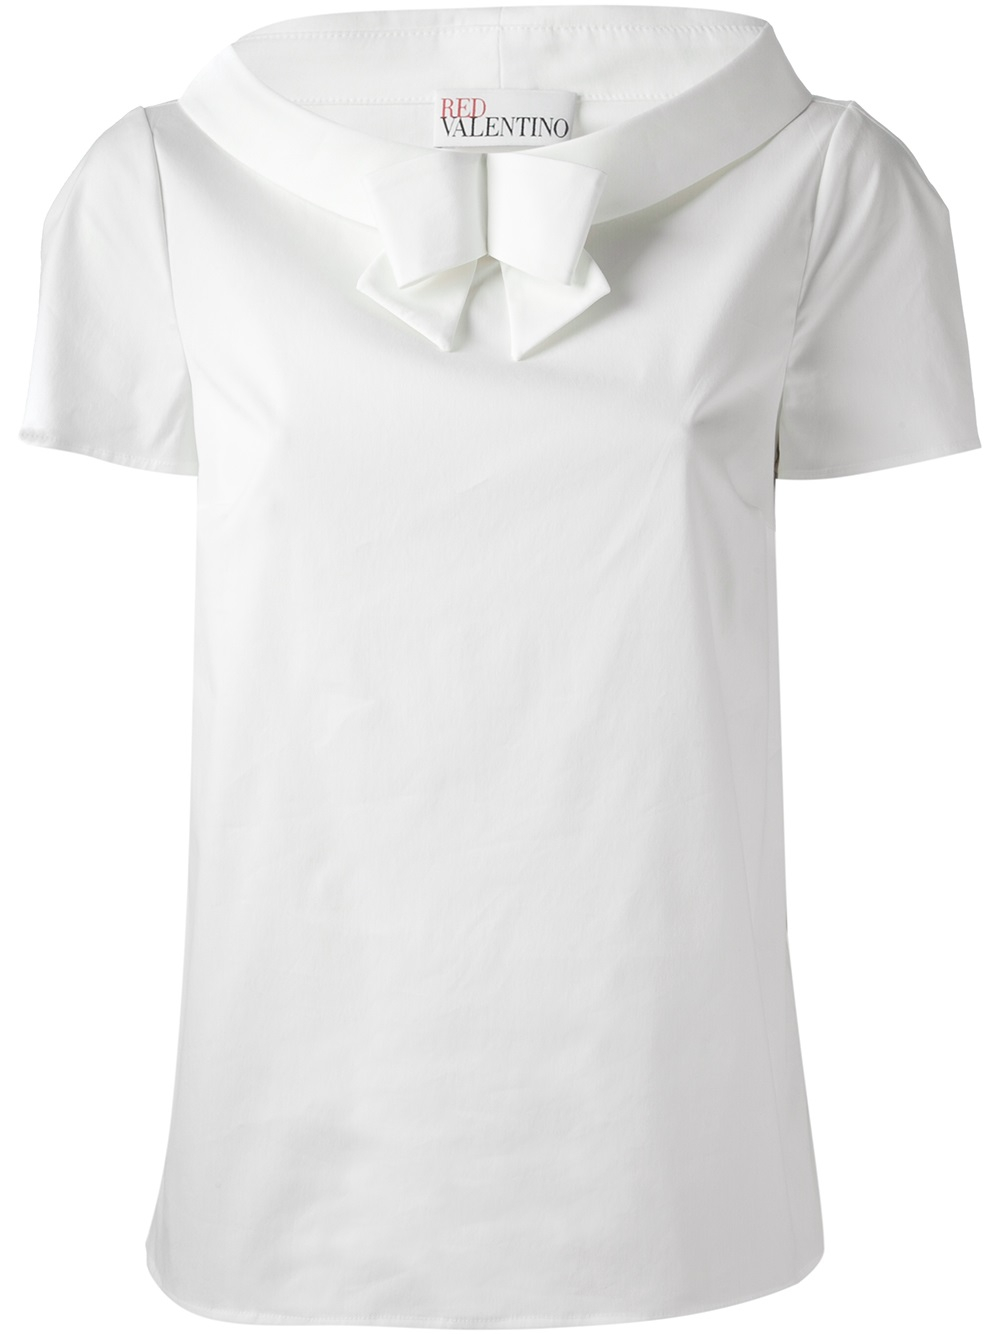 lyst red valentino bow front t shirt in white ForRed Valentino T Shirt